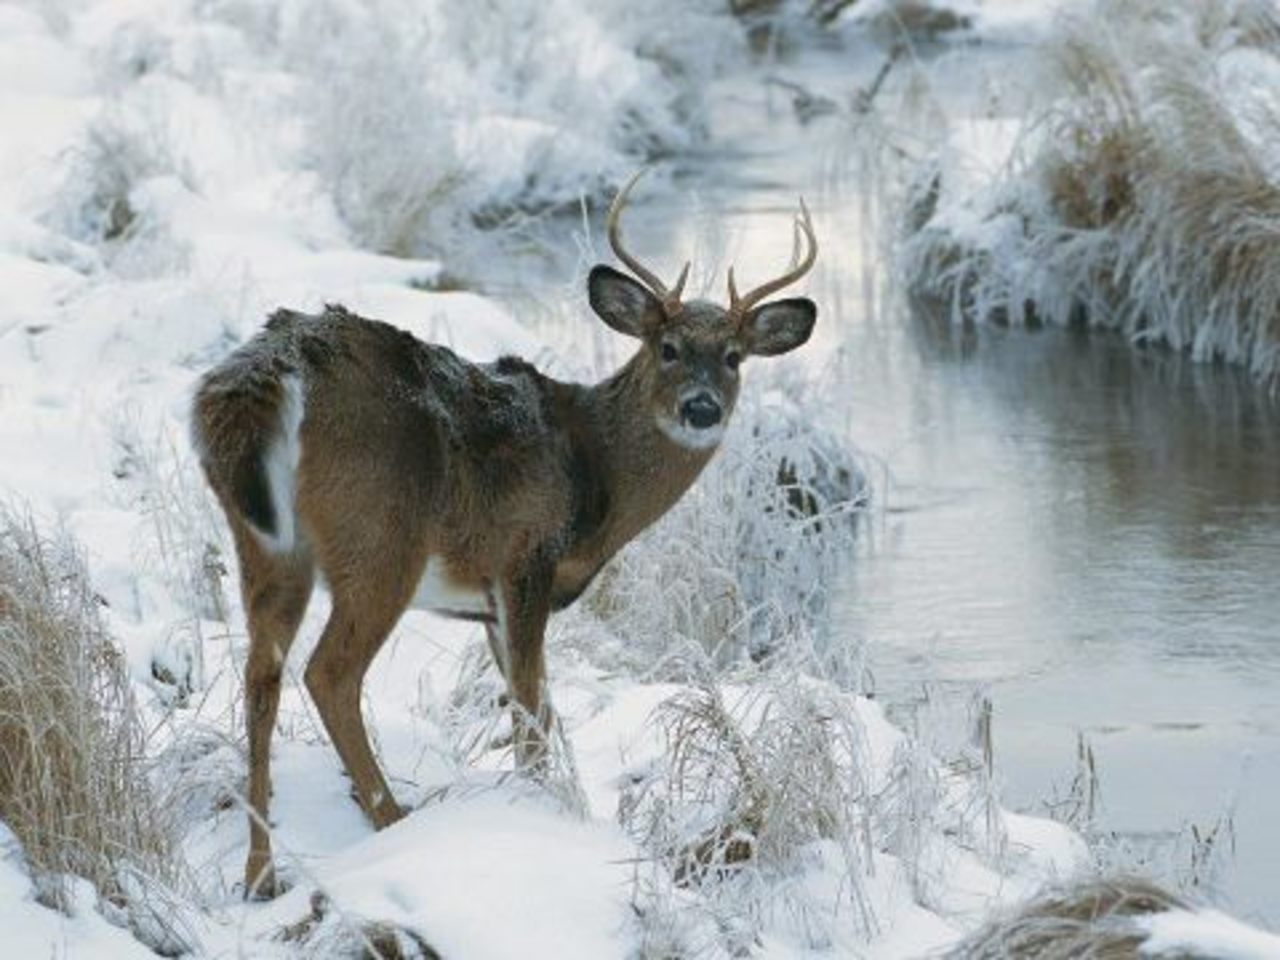 Photos Best Deer Photo Collection Deer in Winter Season Wallpaper 1280x960